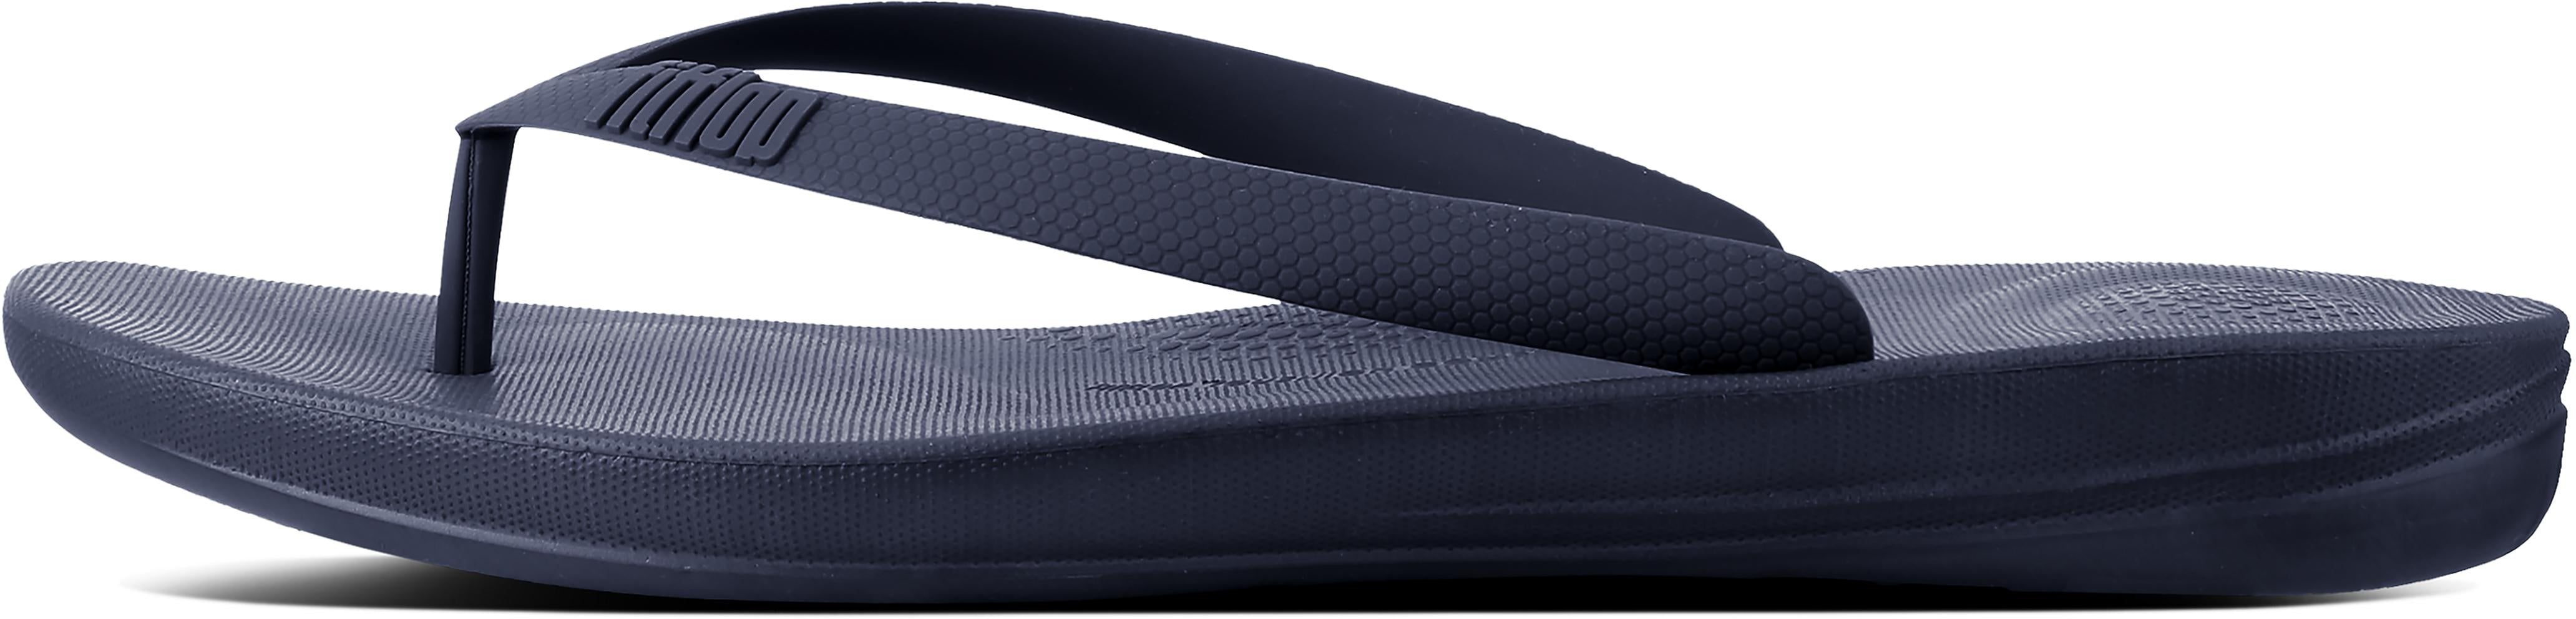 Iqushion Ergonomic Flip-Flops in Midnight Navy from the side